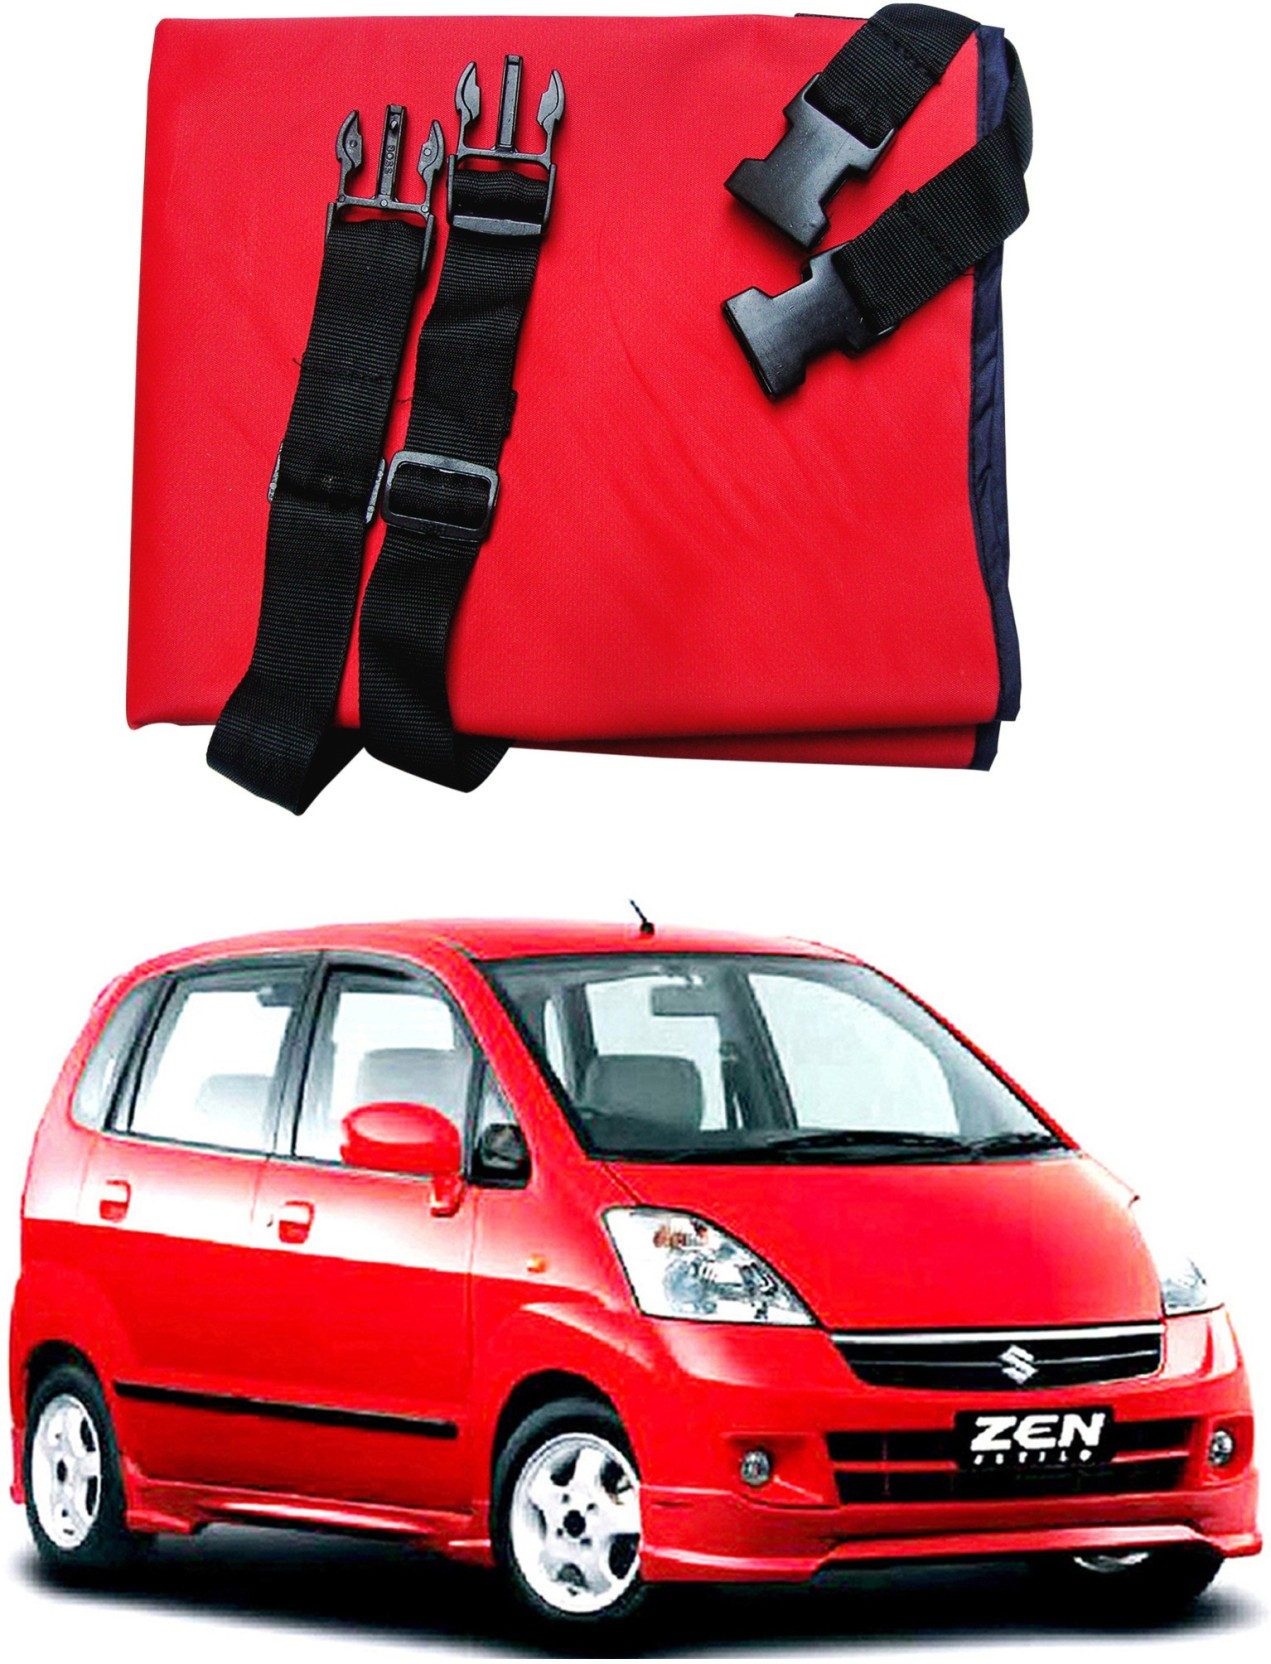 Auto pearl be3h177 premium make car rear maruti suzuki zen estilo type 1 hammock pet seat cover red black waterproof